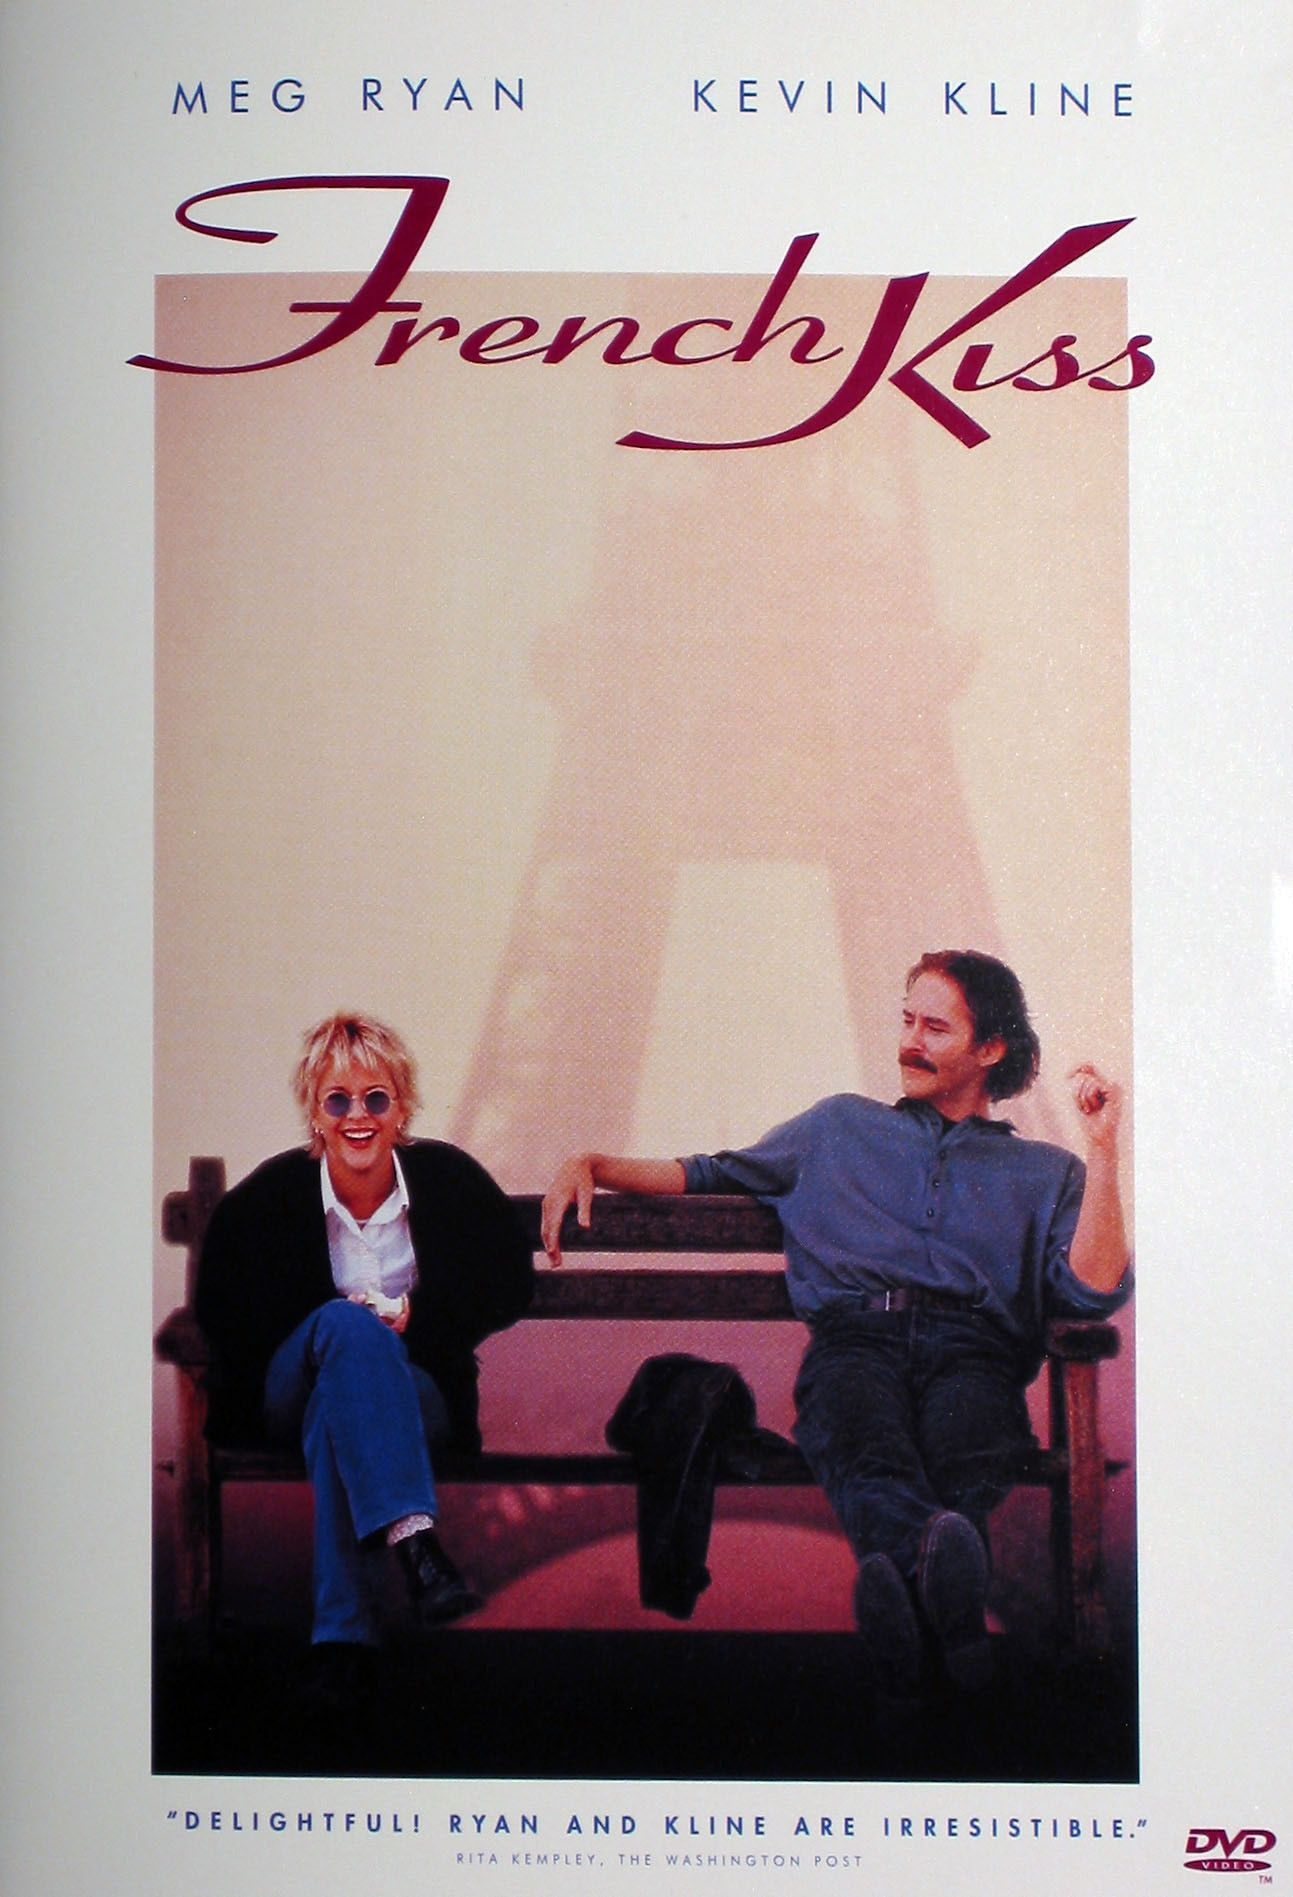 French Kiss (1955) A woman flies to France to confront her straying fiancé, but gets into trouble when the charming crook seated next to her uses her for smuggling.  Meg Ryan, Kevin Kline, Timothy Hutton...10,34